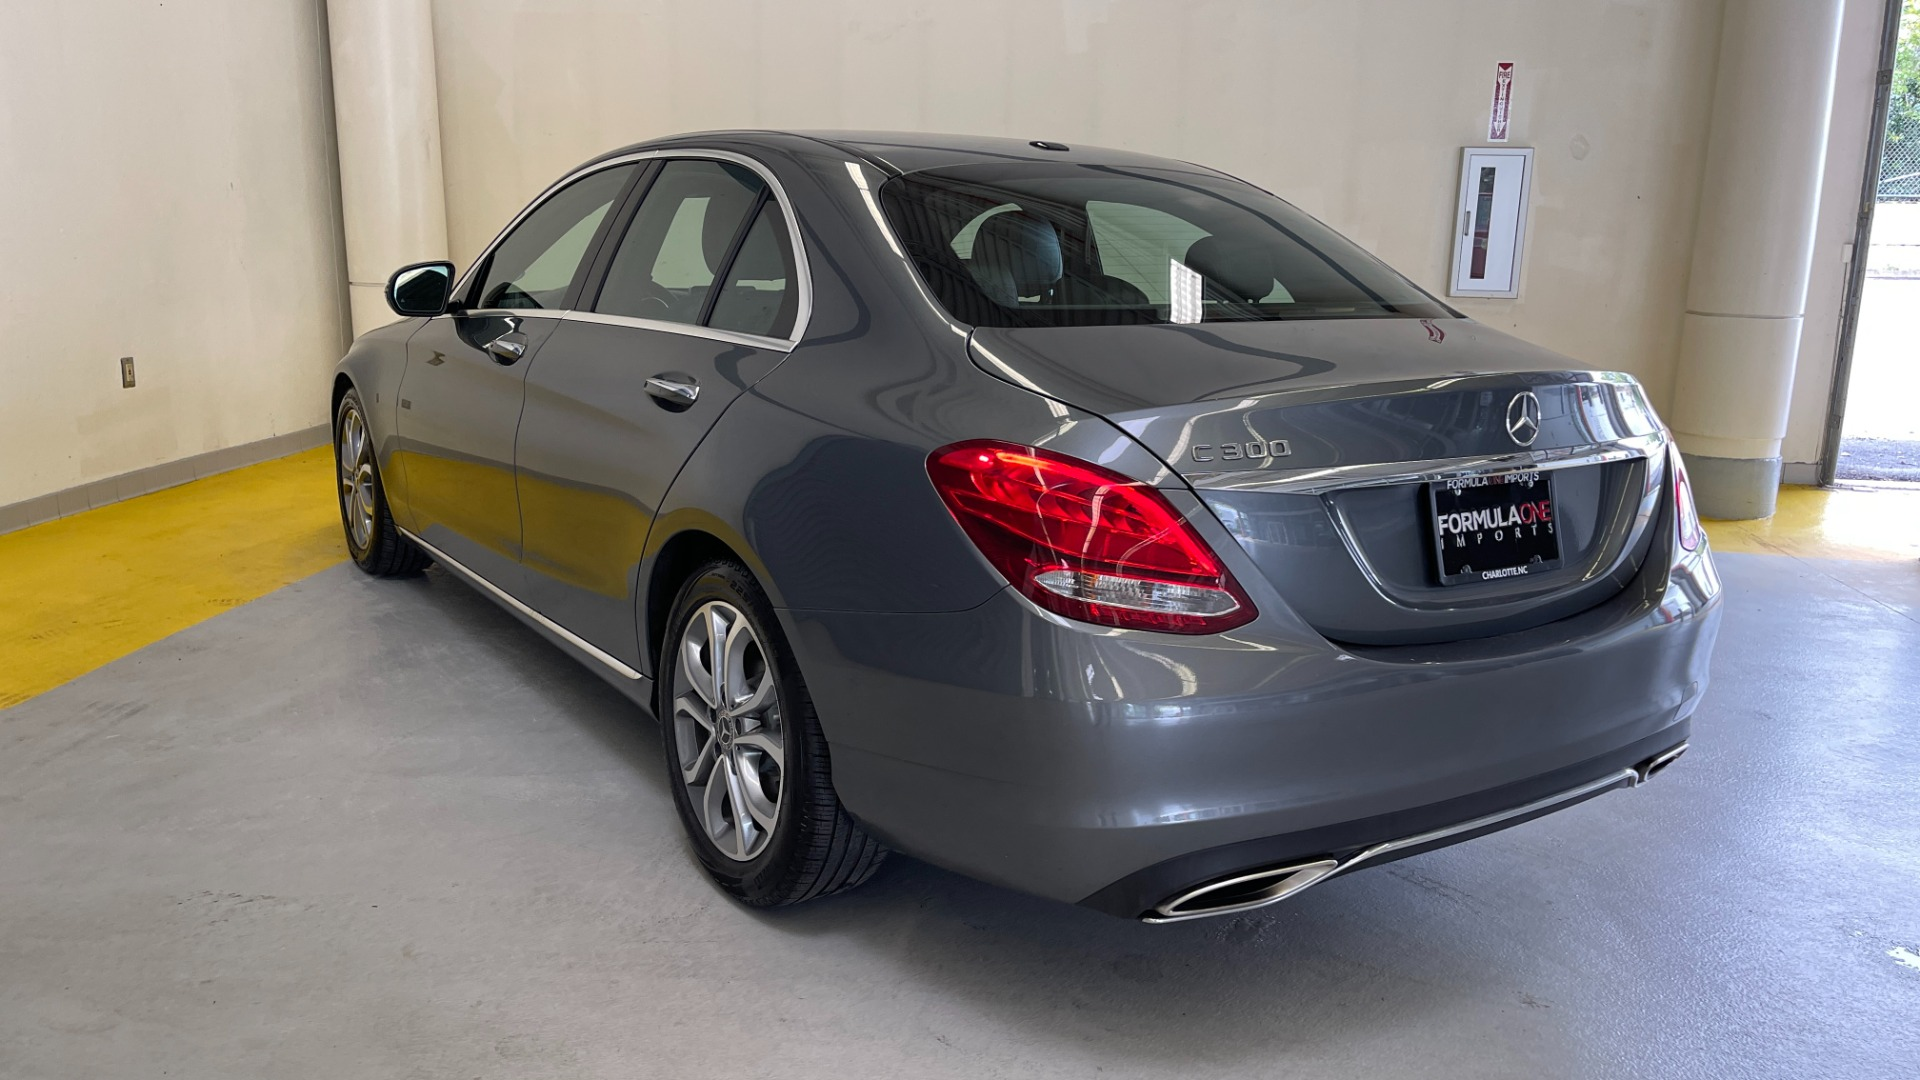 Used 2018 Mercedes-Benz C-CLASS C 300 PREMIUM / SUNROOF / APPLE CARPLAY / HTD STS / REARVIEW for sale $31,795 at Formula Imports in Charlotte NC 28227 6